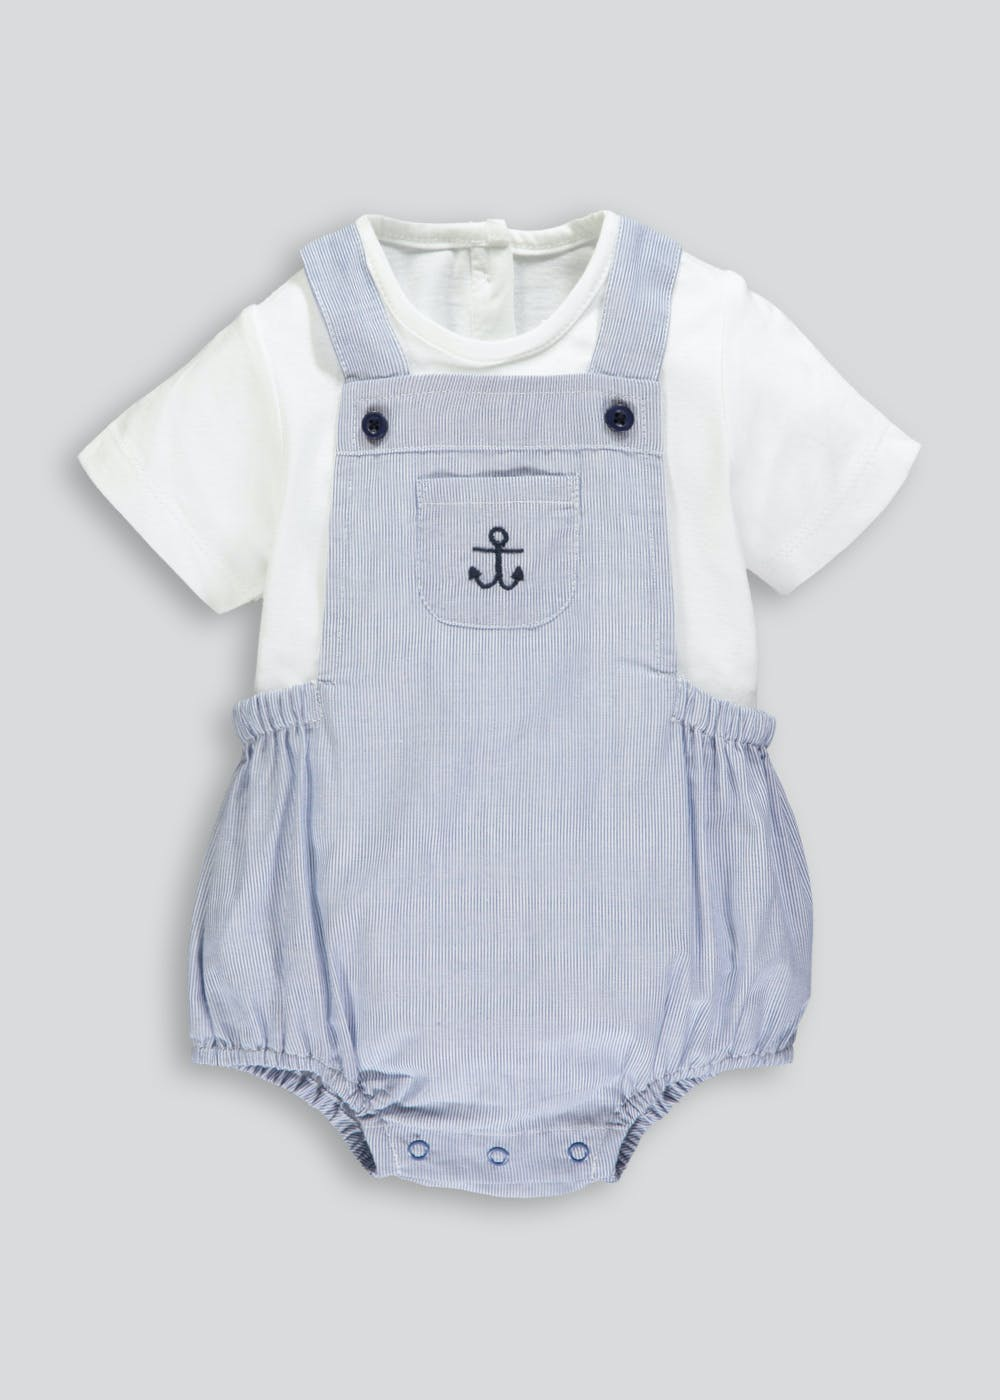 3ad9d3038 Unisex Nautical Romper Cardigan Bodysuit & Socks Set (Newborn-18mths)